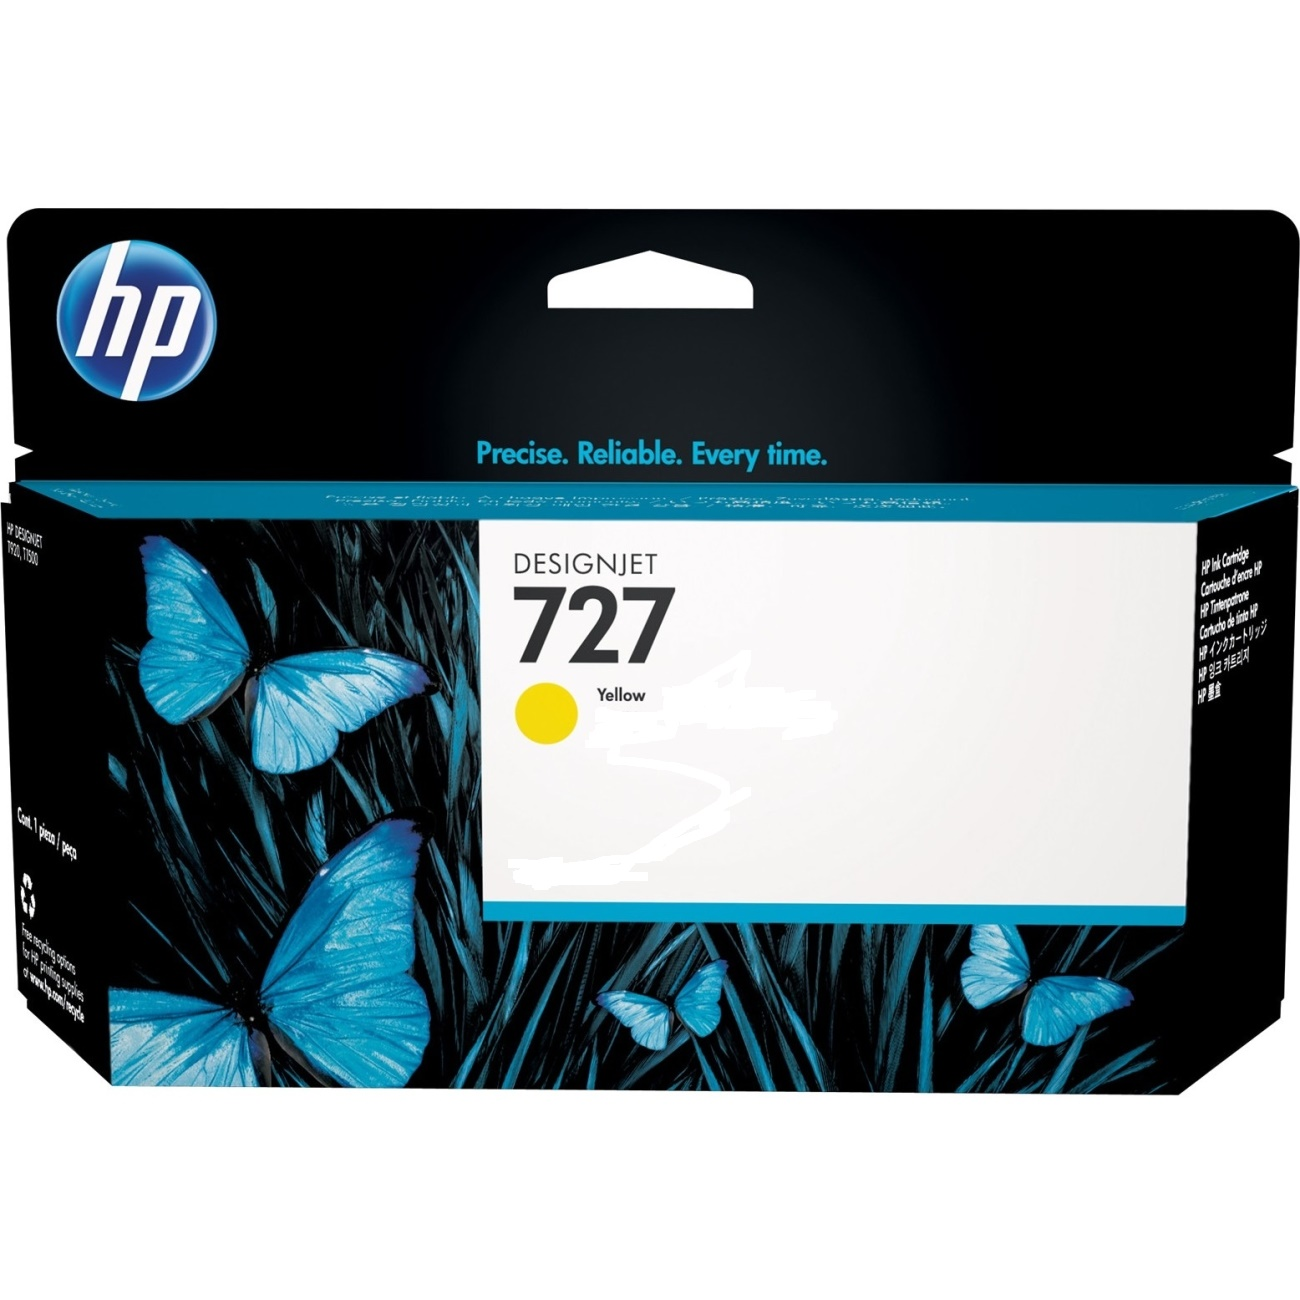 Cartus inkjet HP 727 Yellow 300 ml